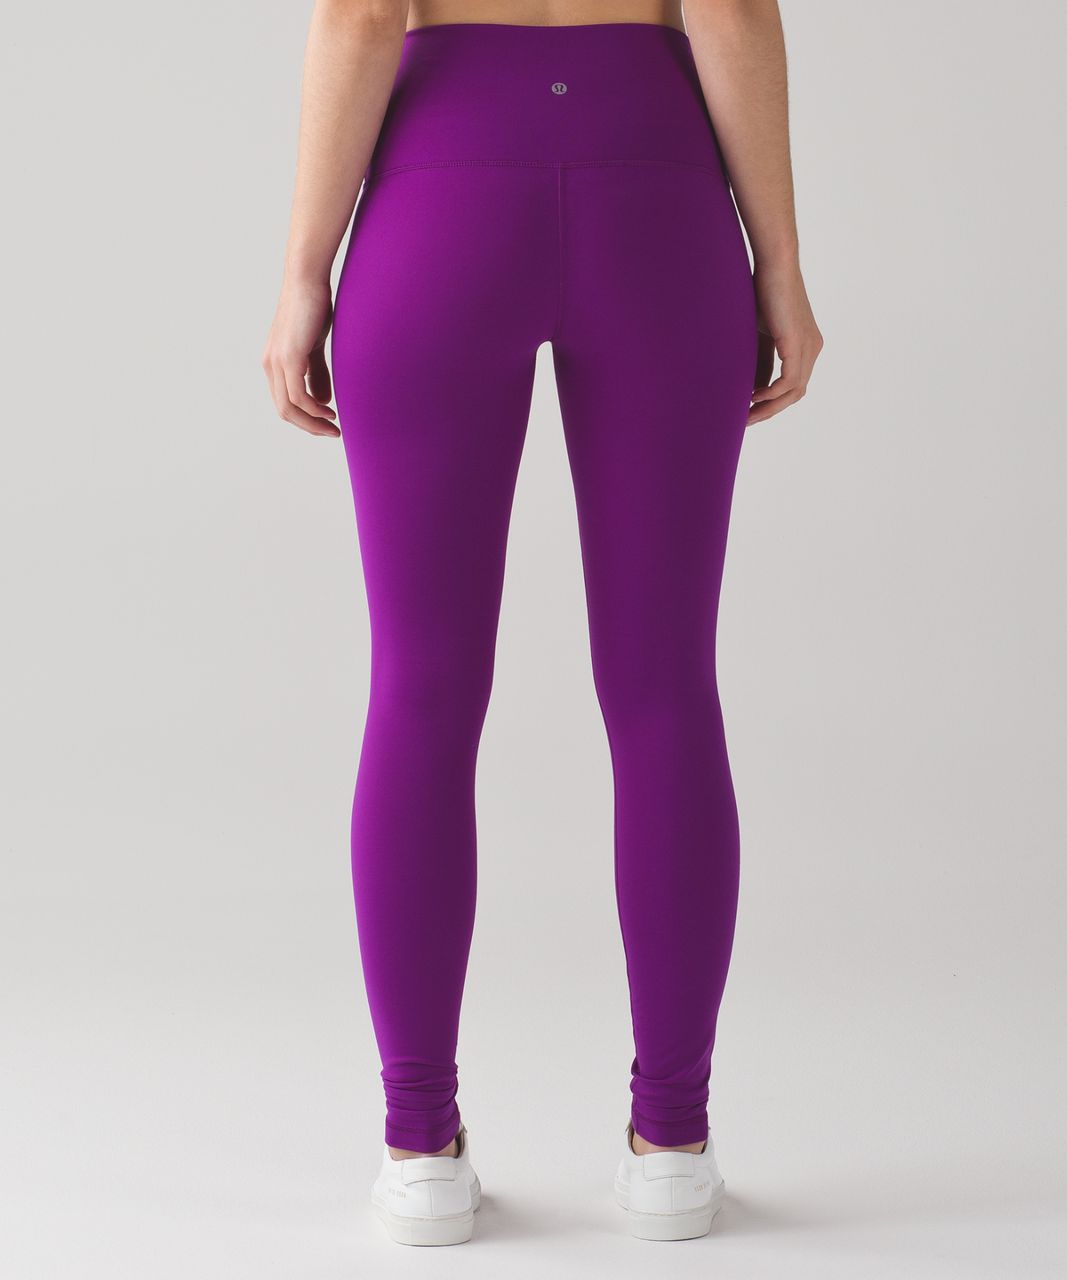 Lululemon Wunder Under Pant (Hi-Rise) (Full-On Luon) - Tender Violet